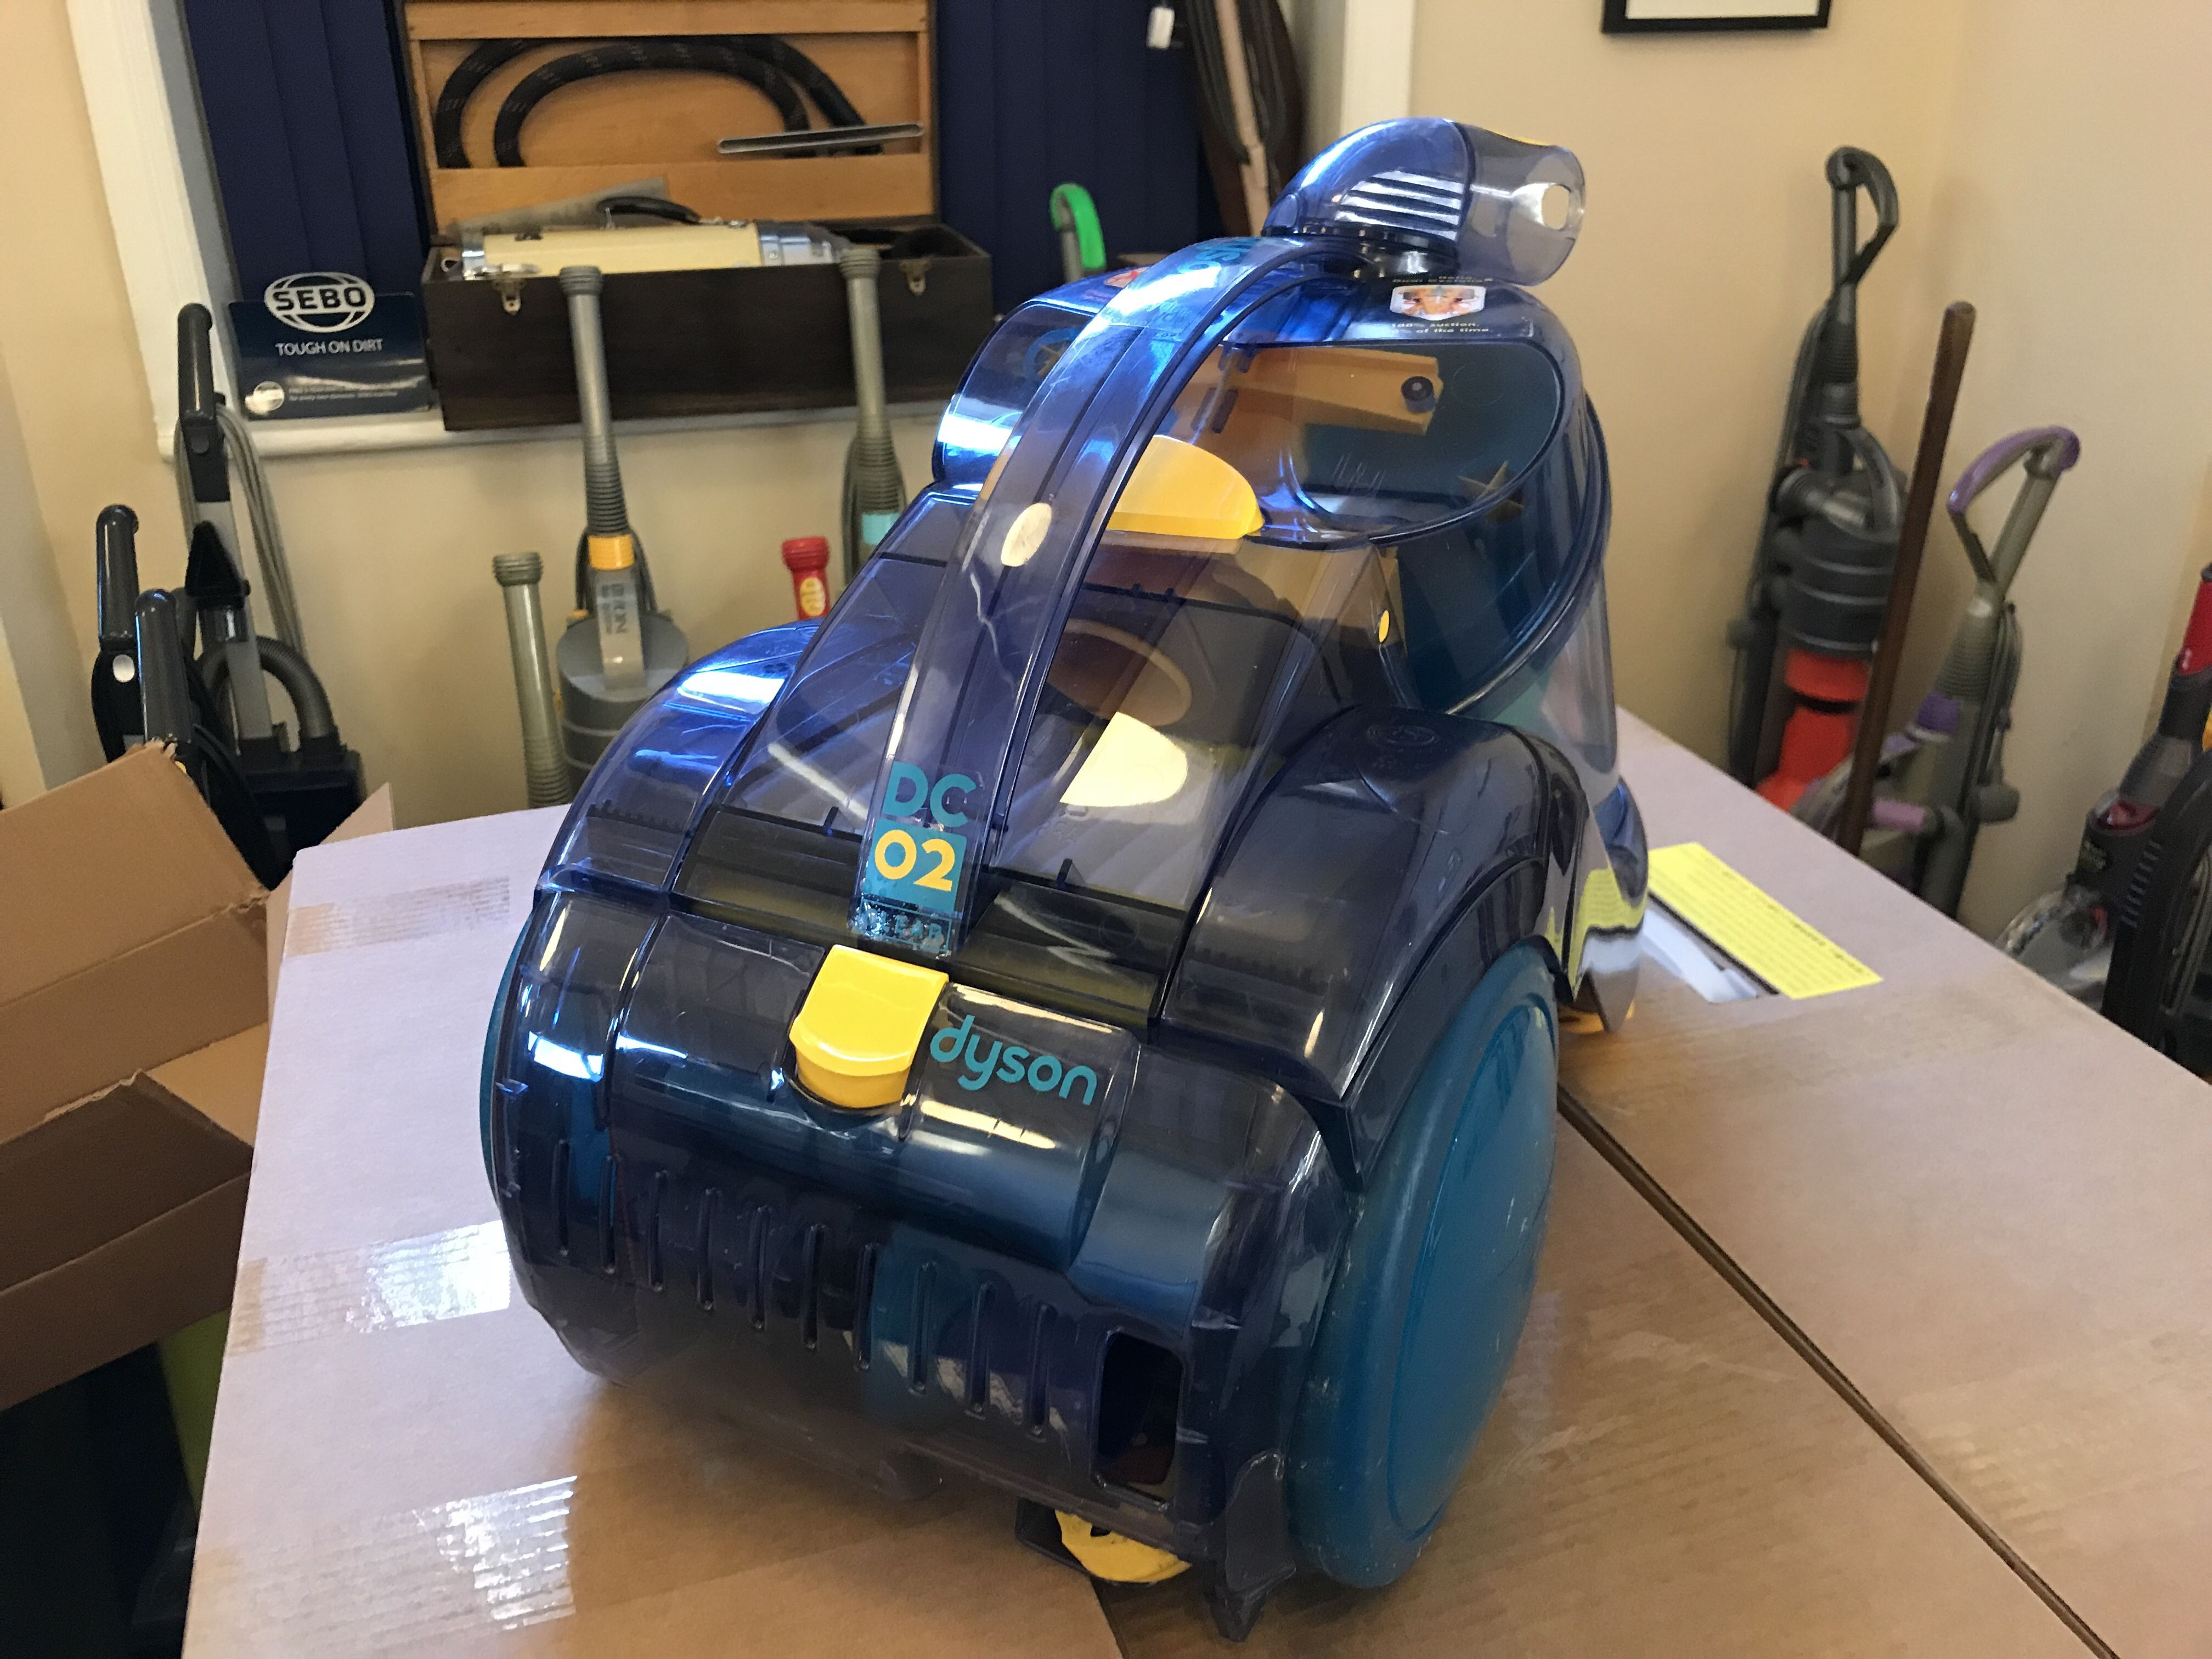 A Rather Rare Dyson Dc02 Clear We Have Just Got Finished That Will Be Languishing In The Museum Dyson Toy Car Home Appliances